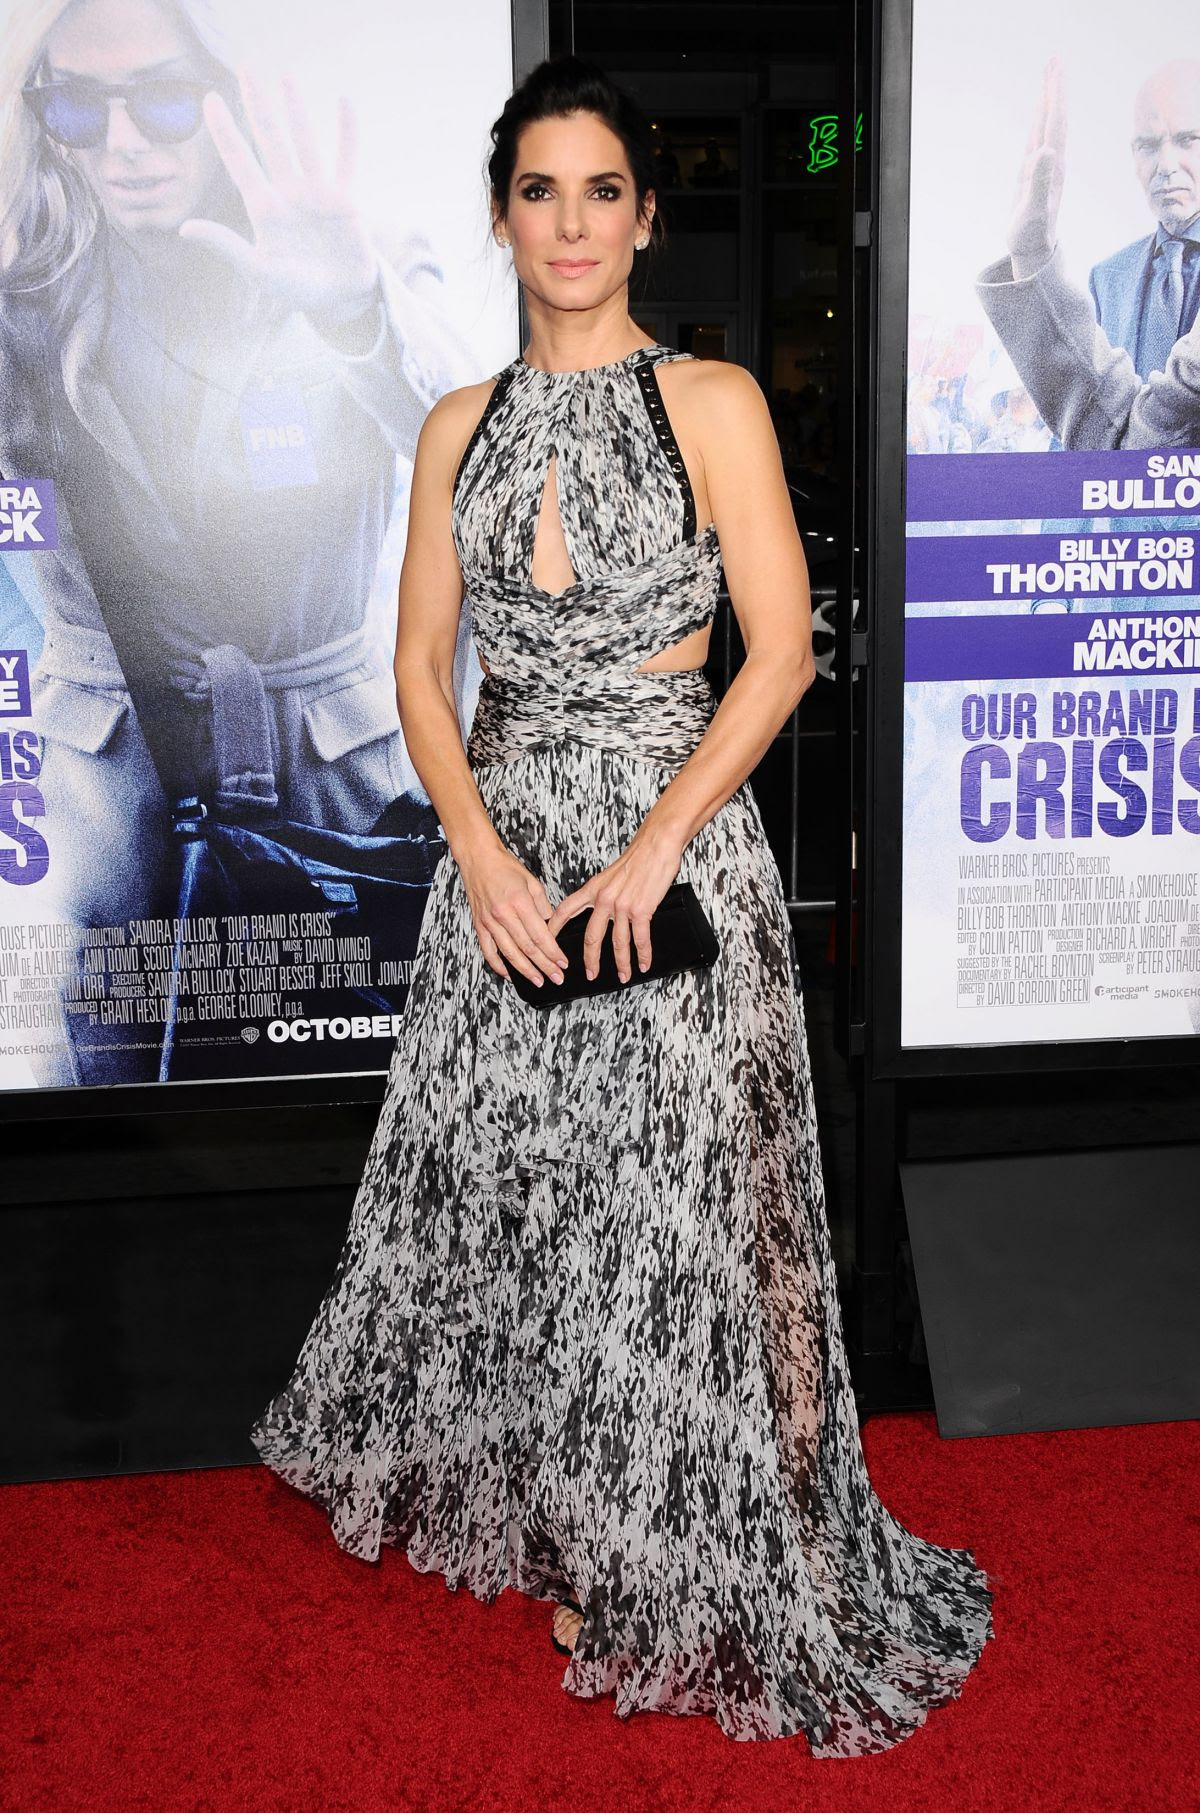 SANDRA BULLOCK at Our Brand Is Crisis Premiere in Hollywood 10/26/2015